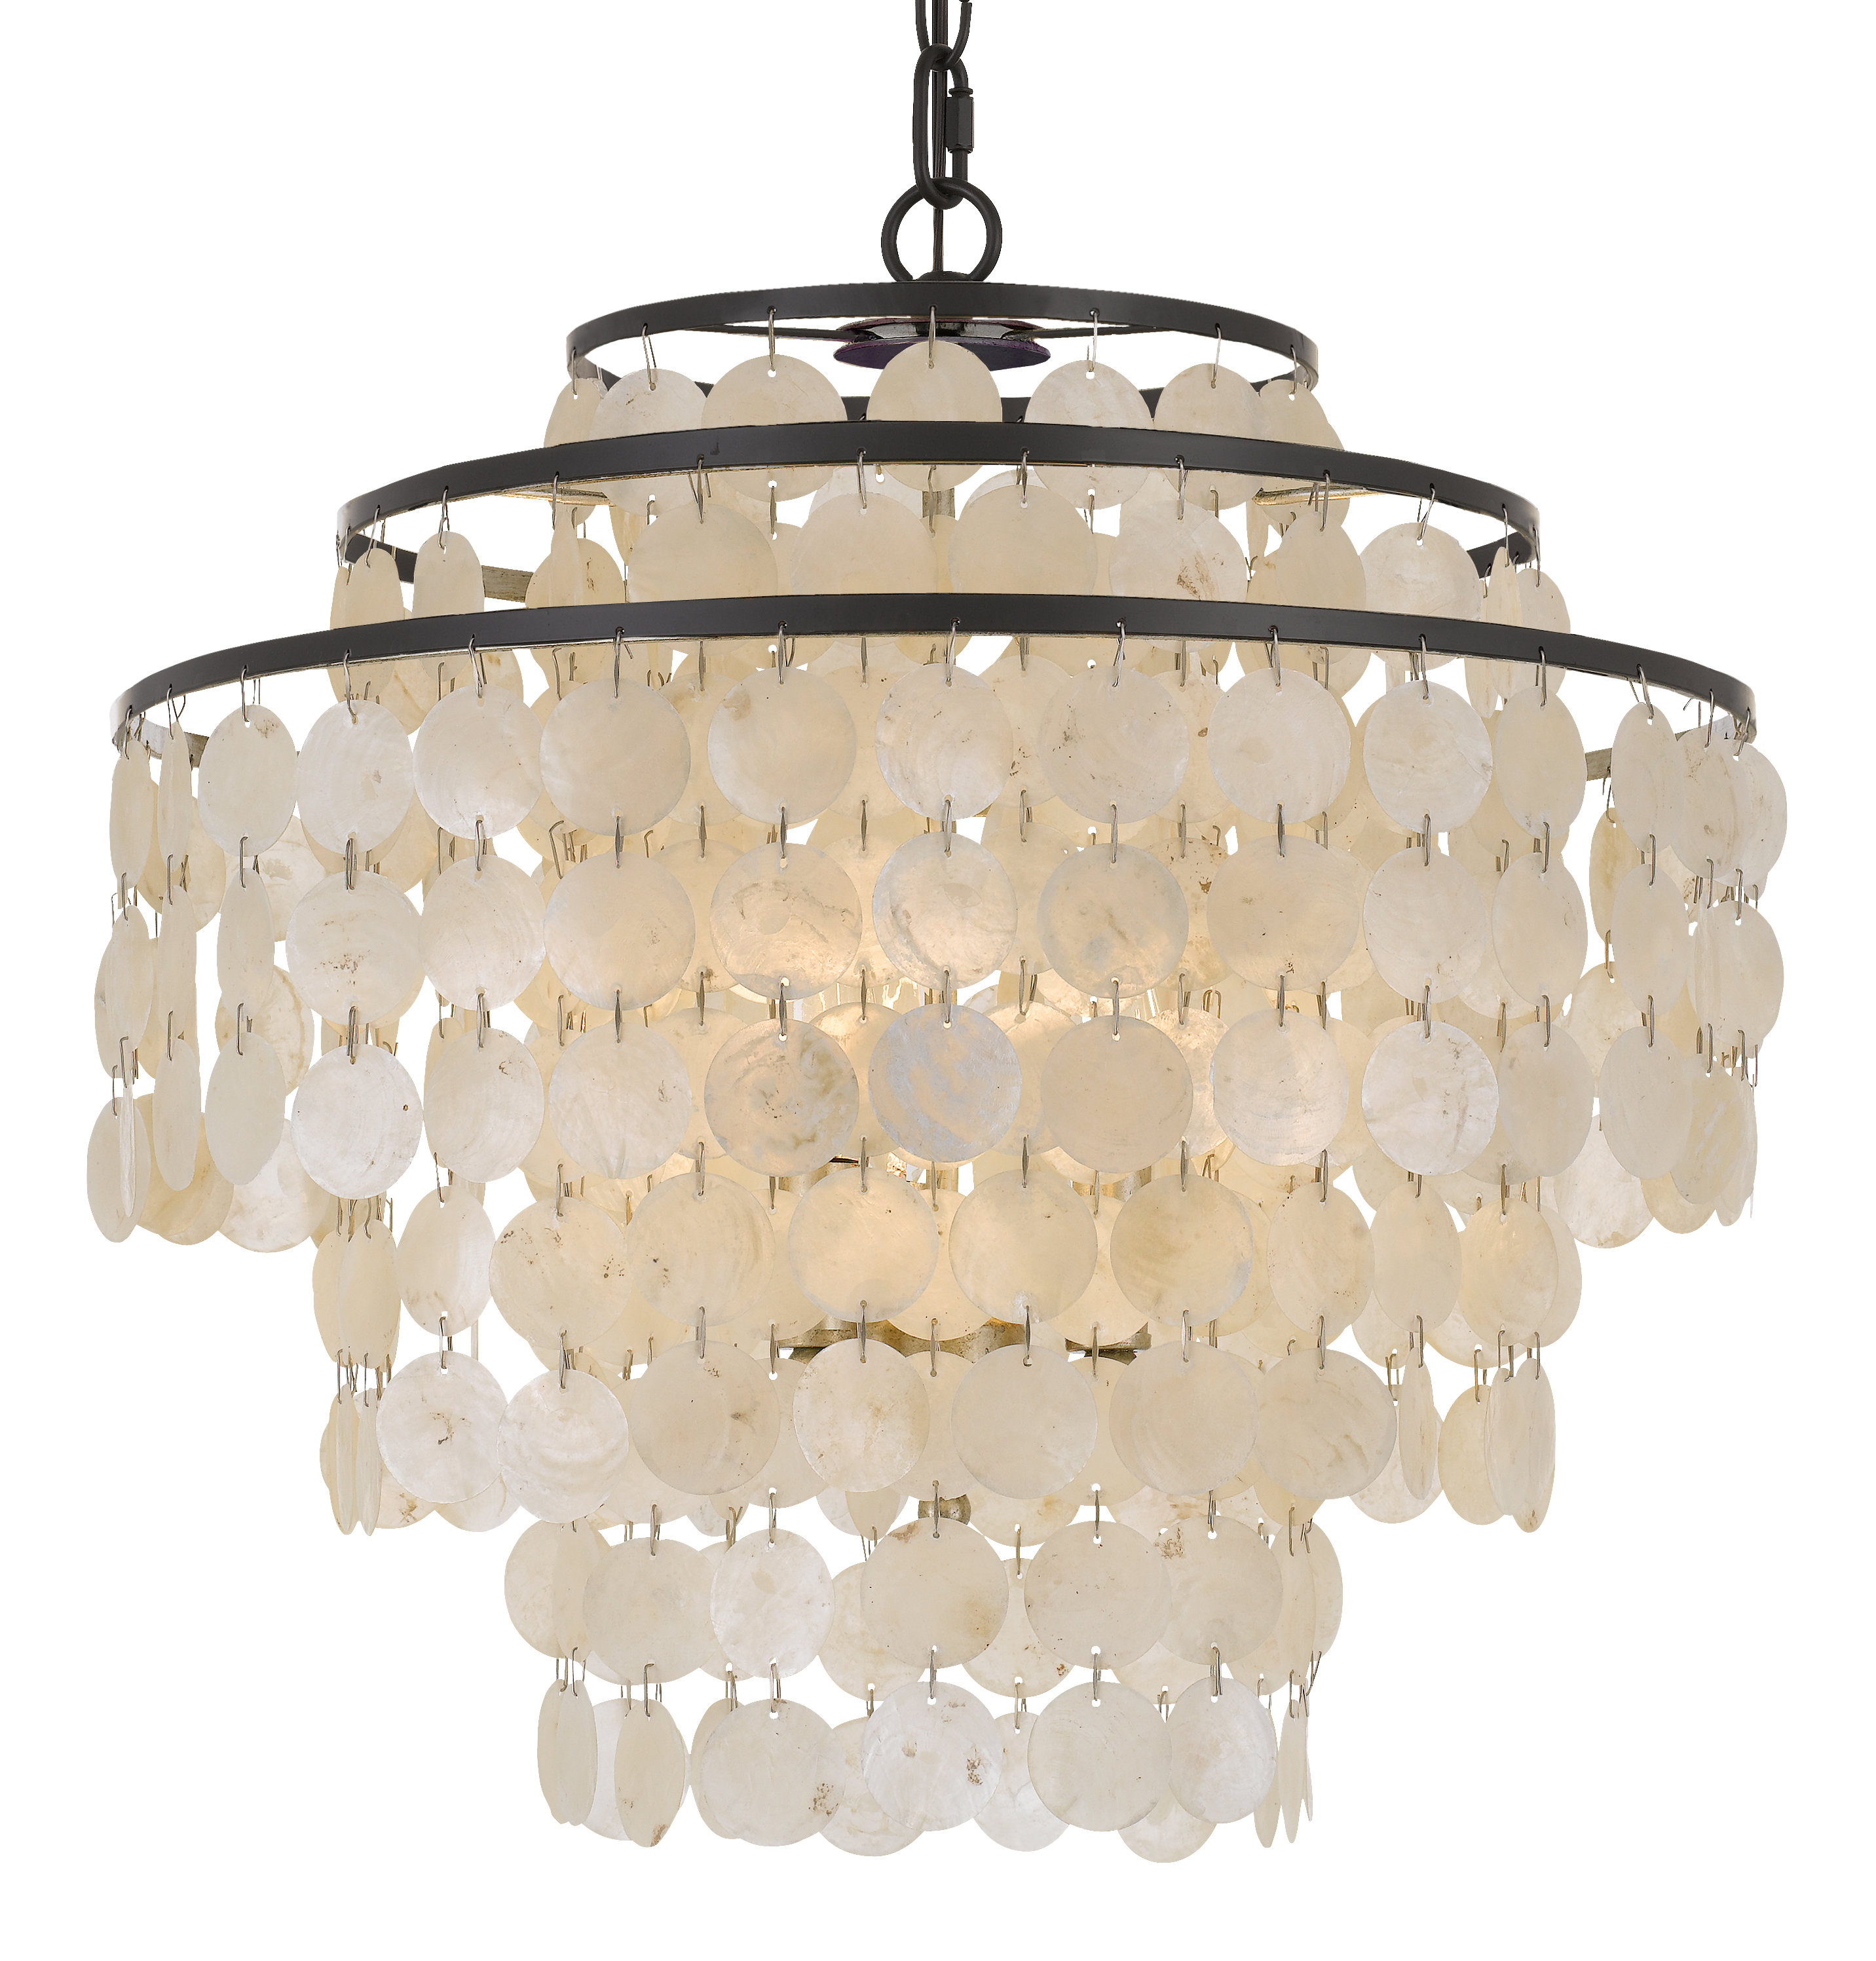 Widely Used Modern & Contemporary Master Bedroom Chandelier (View 15 of 25)